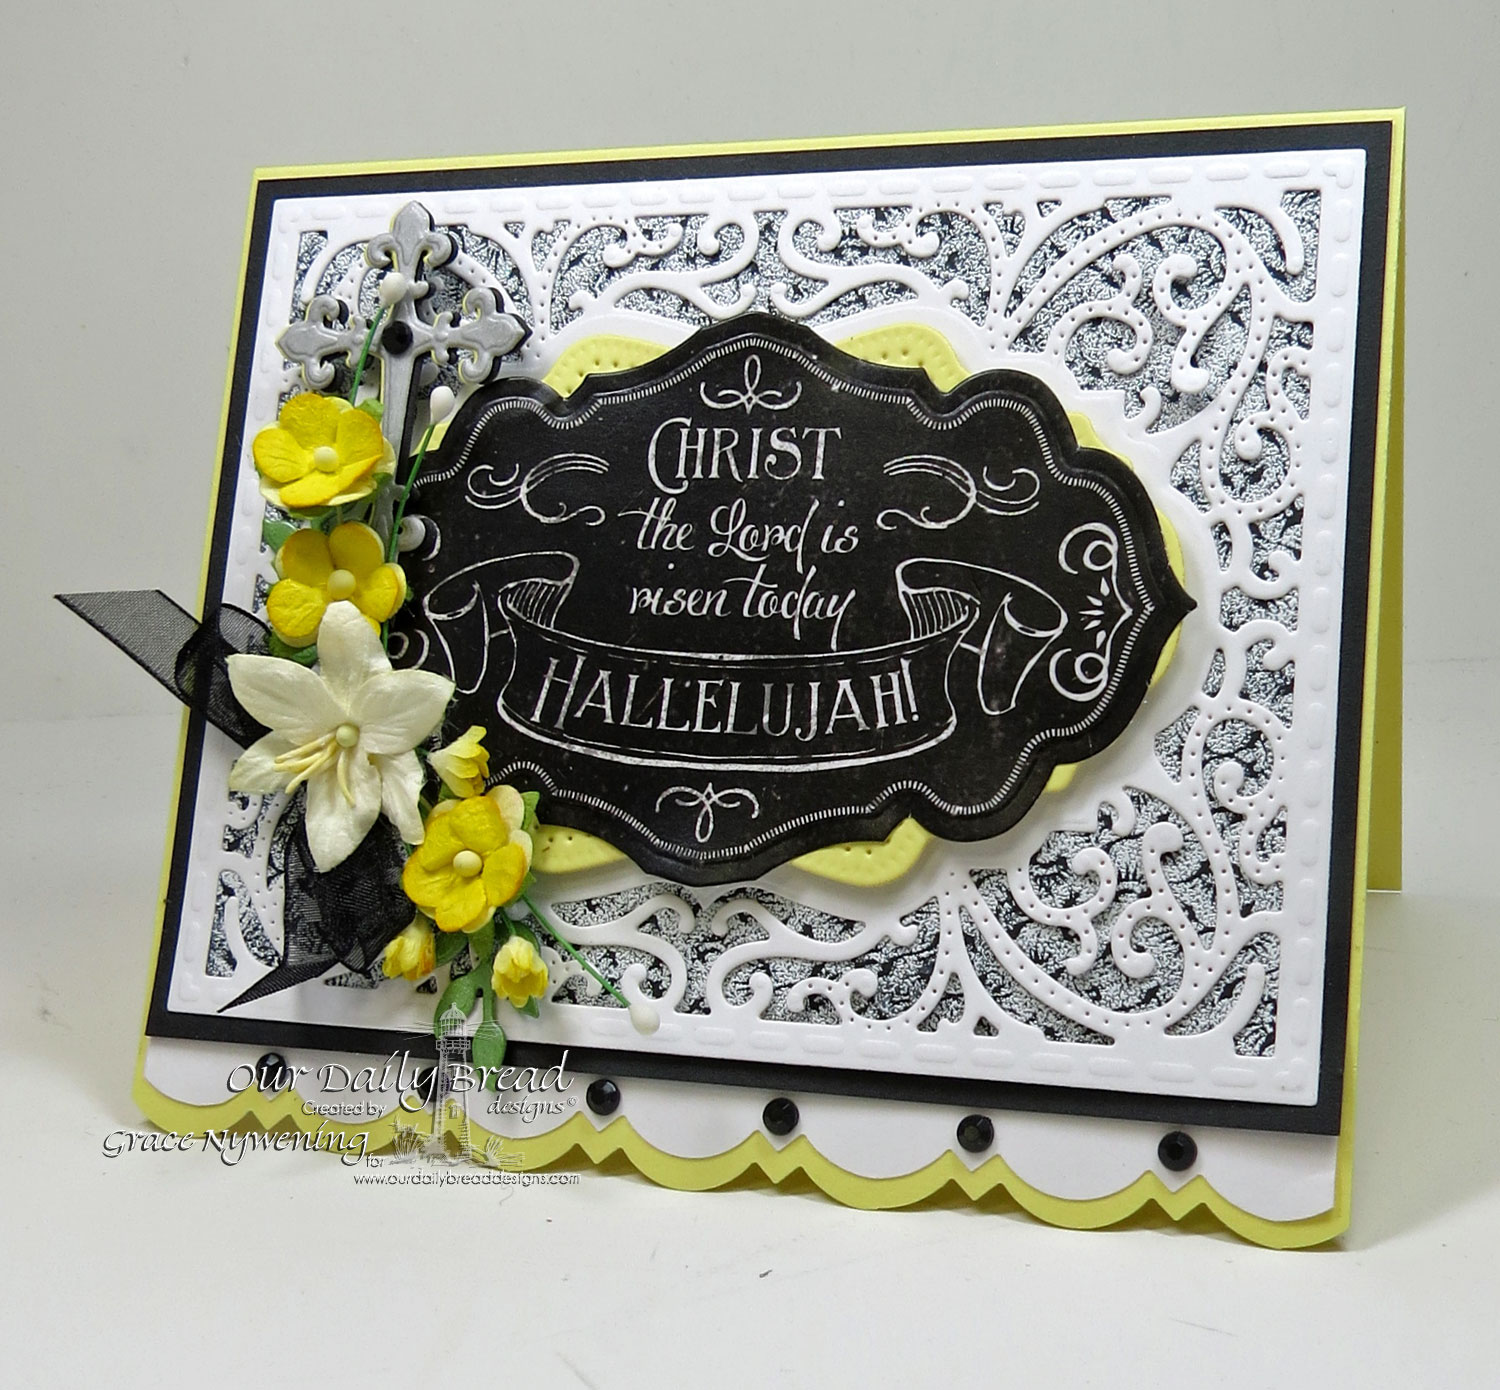 Stamps - Our Daily Bread Designs Chalkboard Fan Background, ODBD Custom Ornamental Crosses Die, ODBD Custom Vintage Flourish Pattern Die, ODBD Chalkboard Paper Collection,ODBD Custom Antique Labels and Border Dies